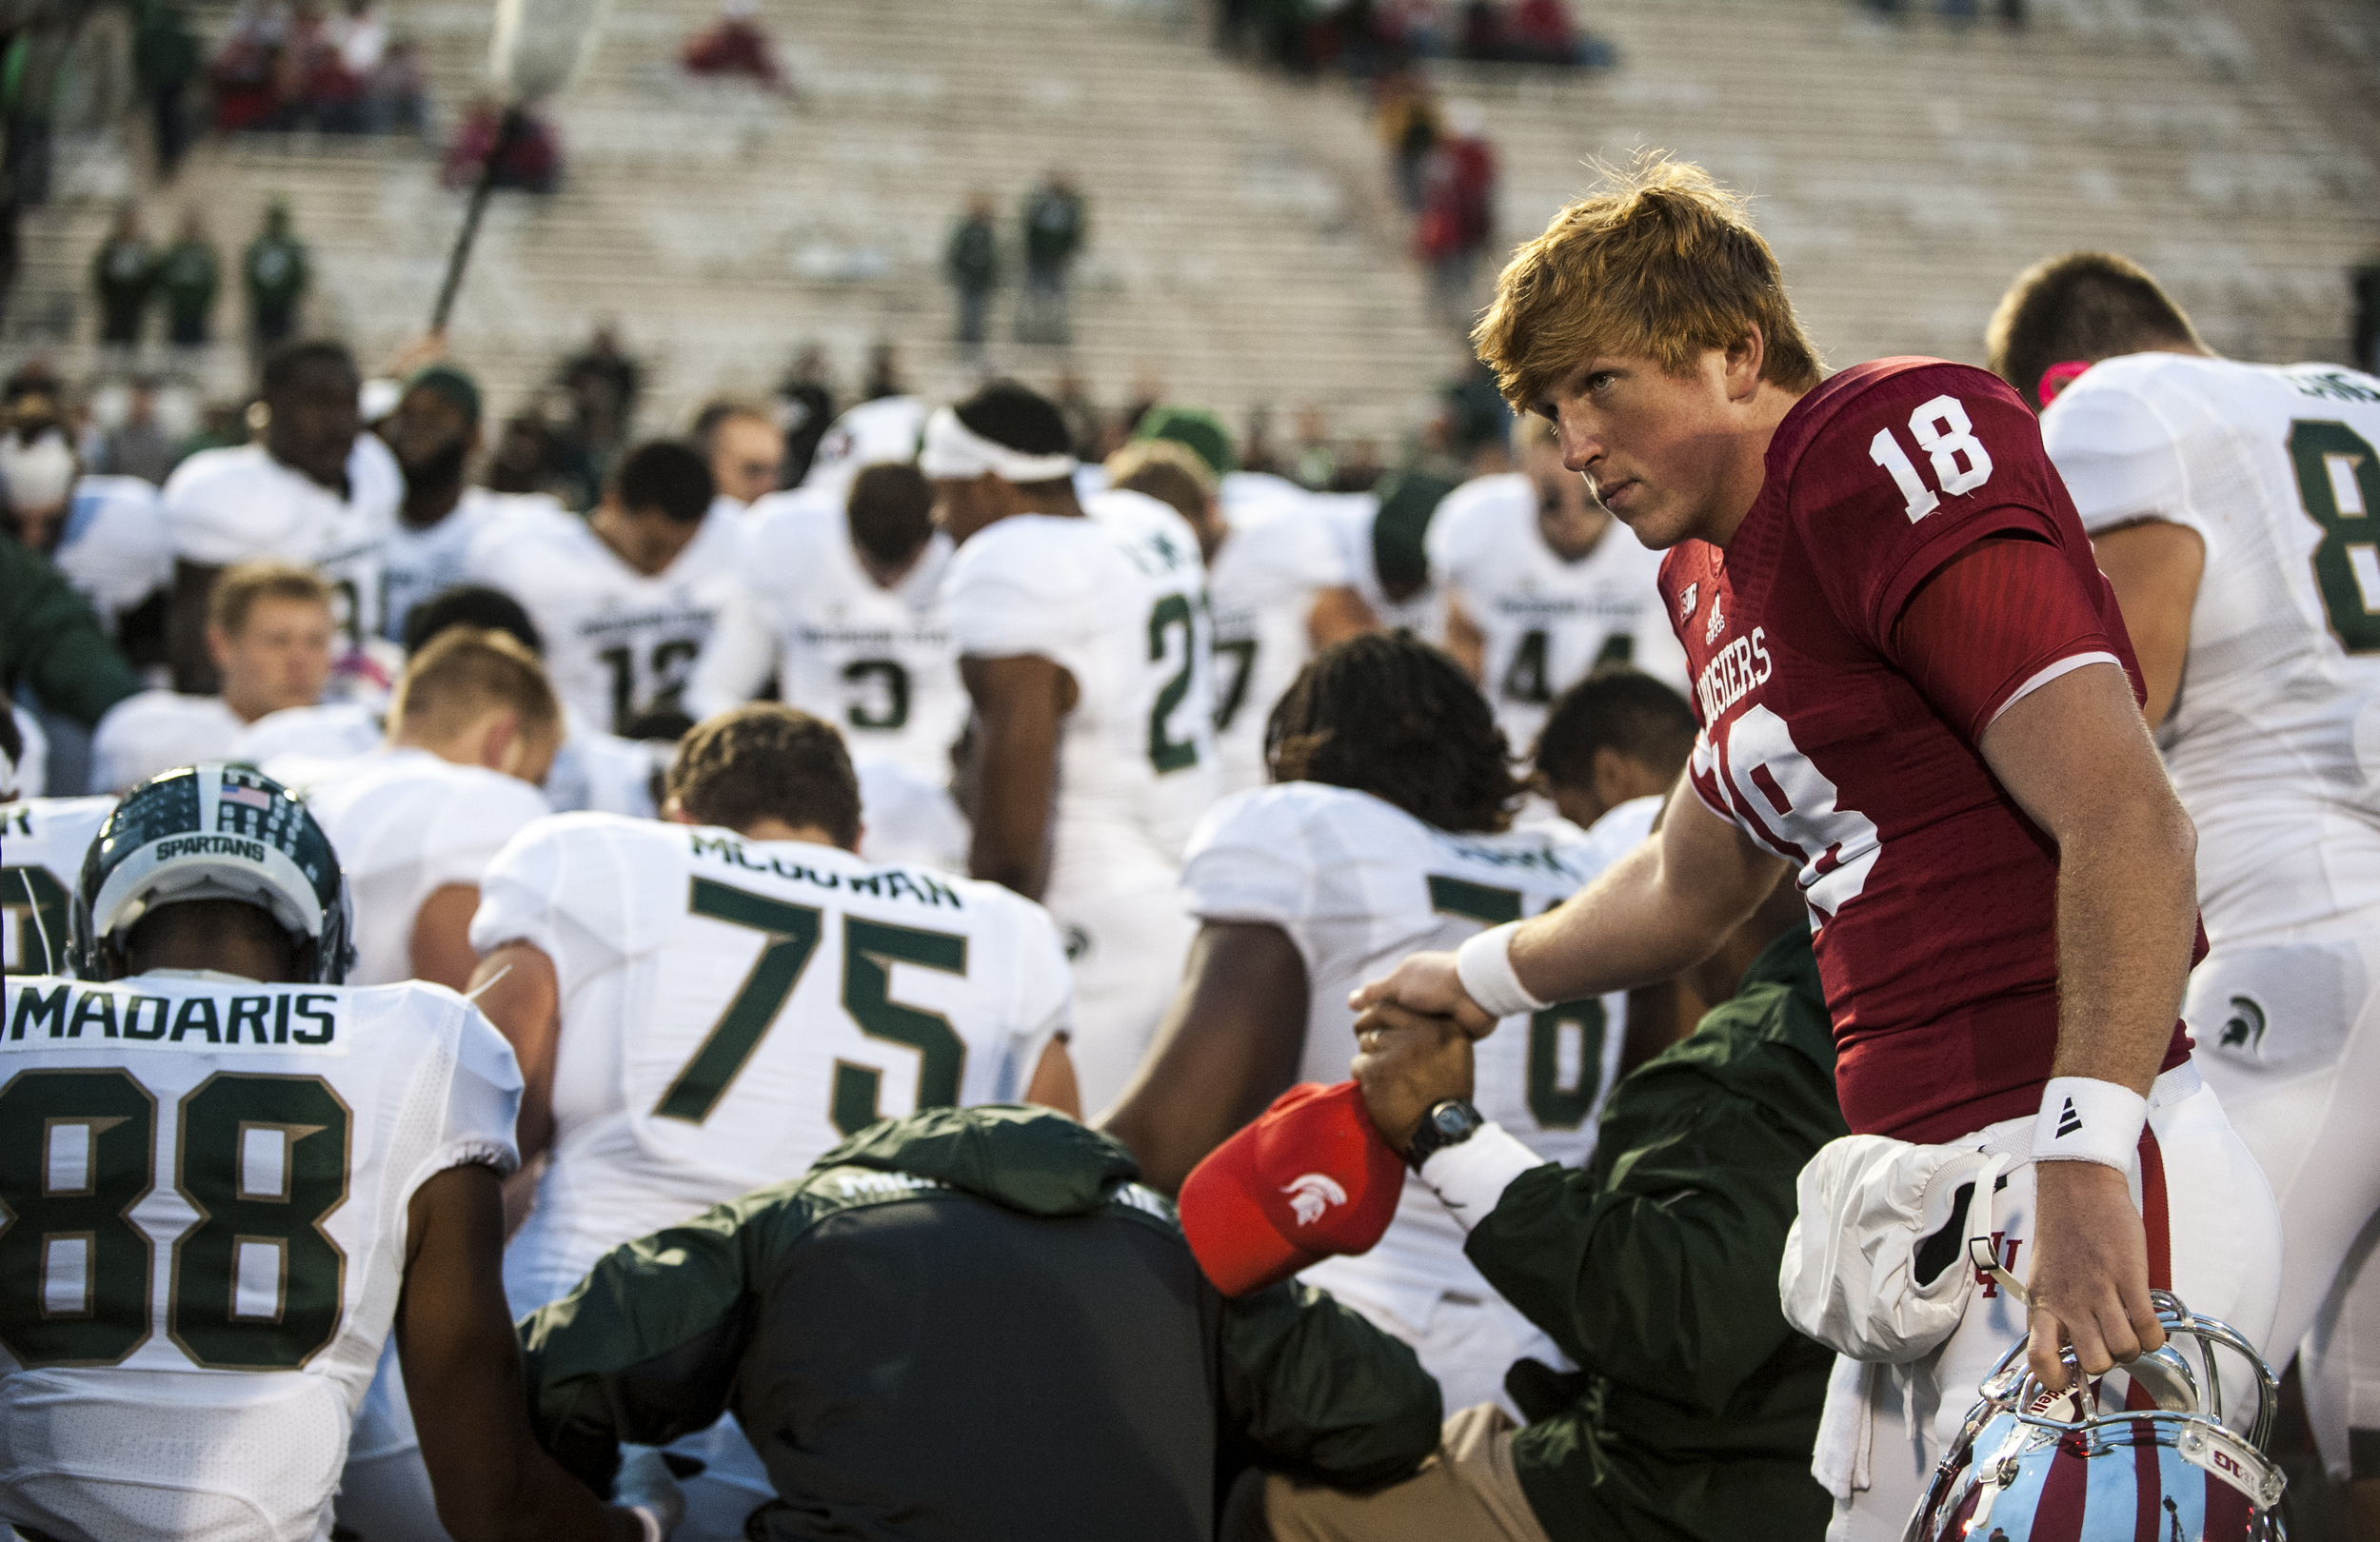 After a devastating 17-56 defeat at their own homecoming against Michigan State, Hoosiers quarter back Danny Cameron joins Michigan State players in a post game prayer on Saturday, October 18.